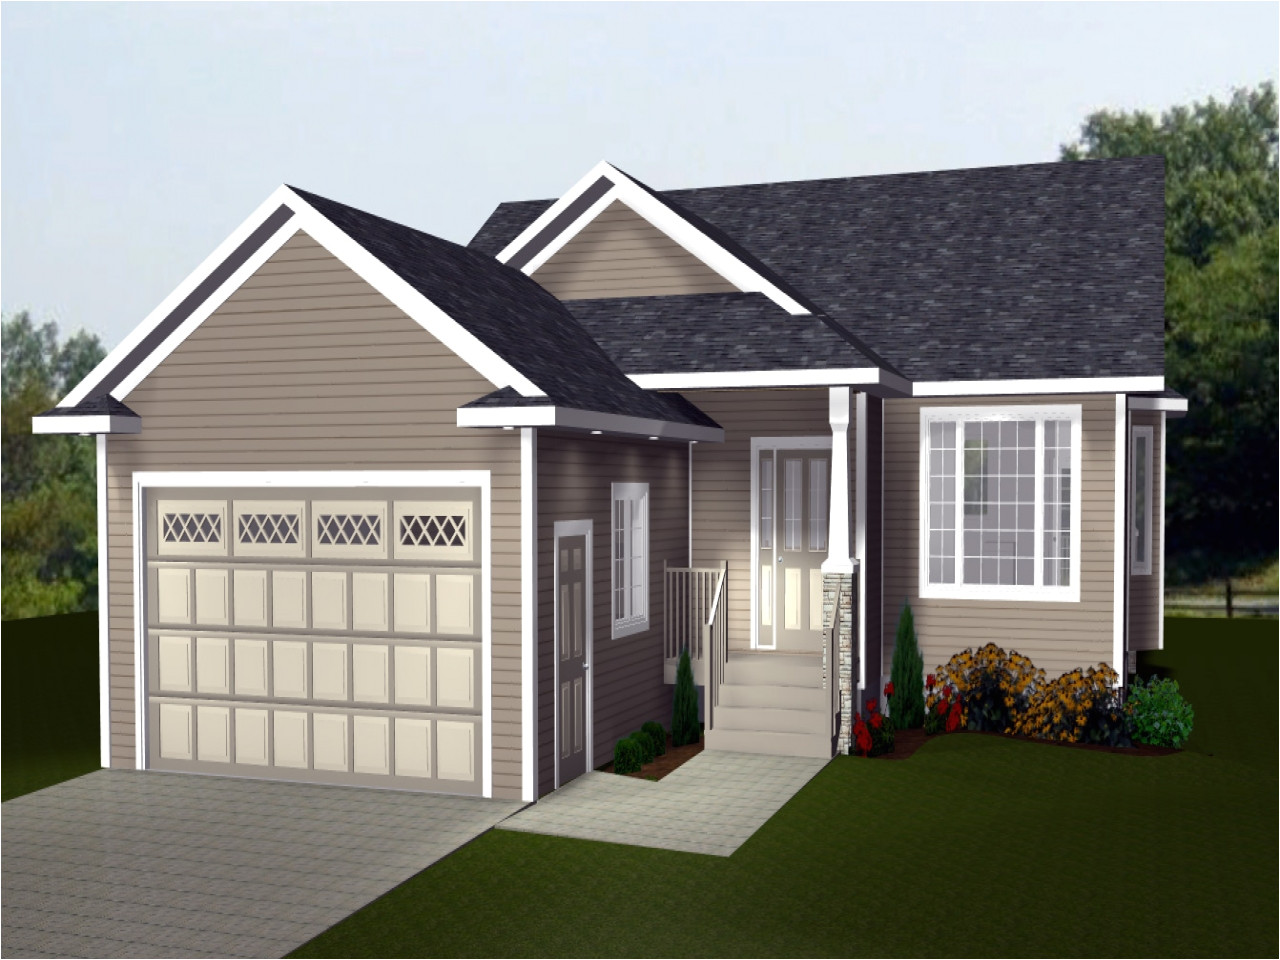 bdb4bb2fdc143f55 bungalow house plans with garage bungalow house plans with basement